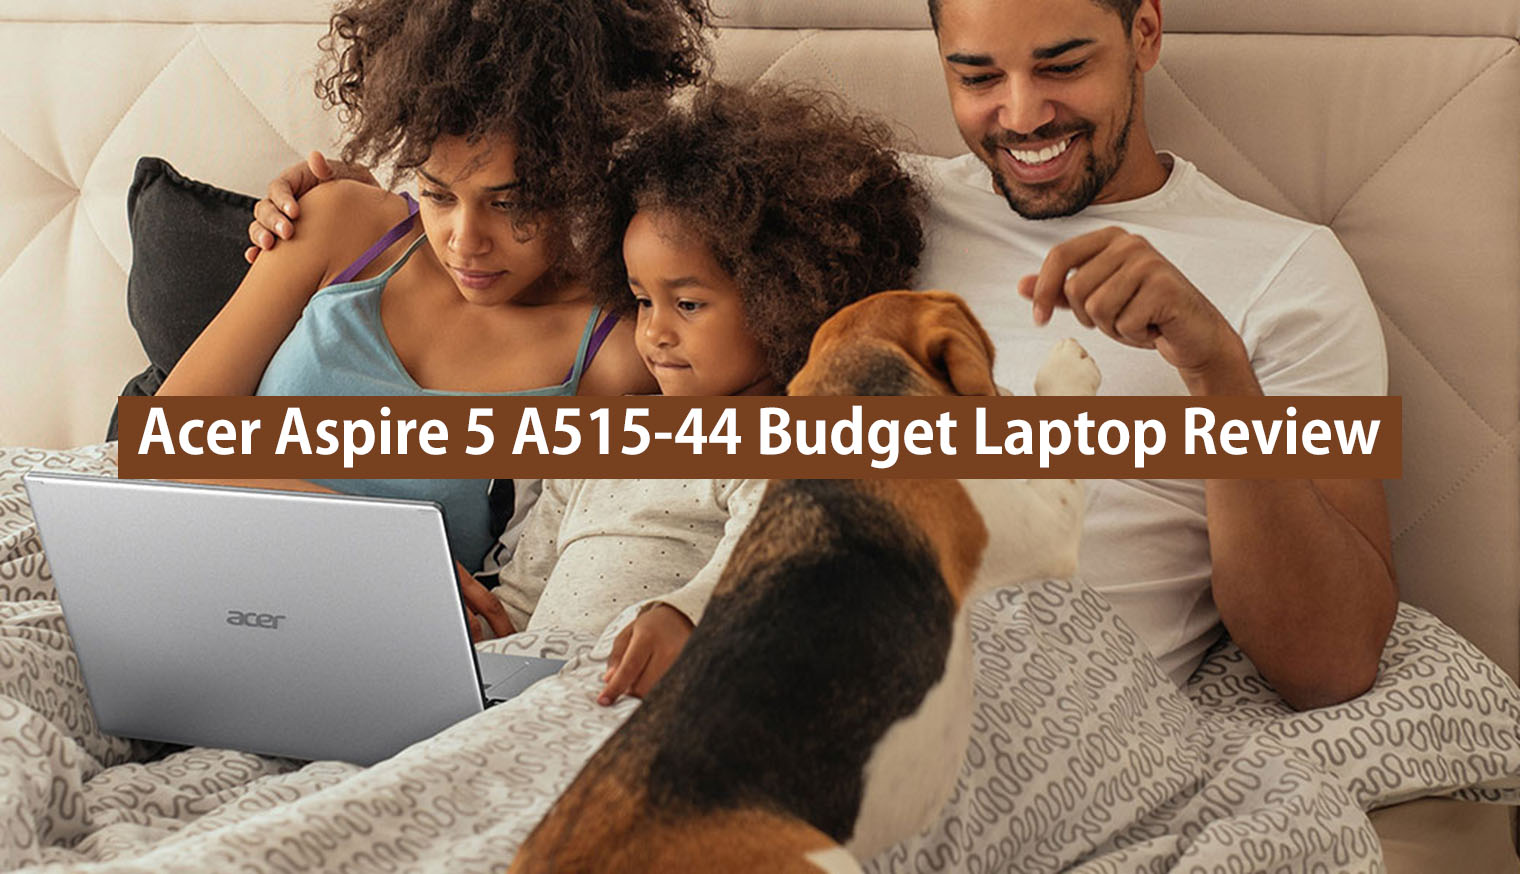 acer aspire 5 a515-44 laptop review